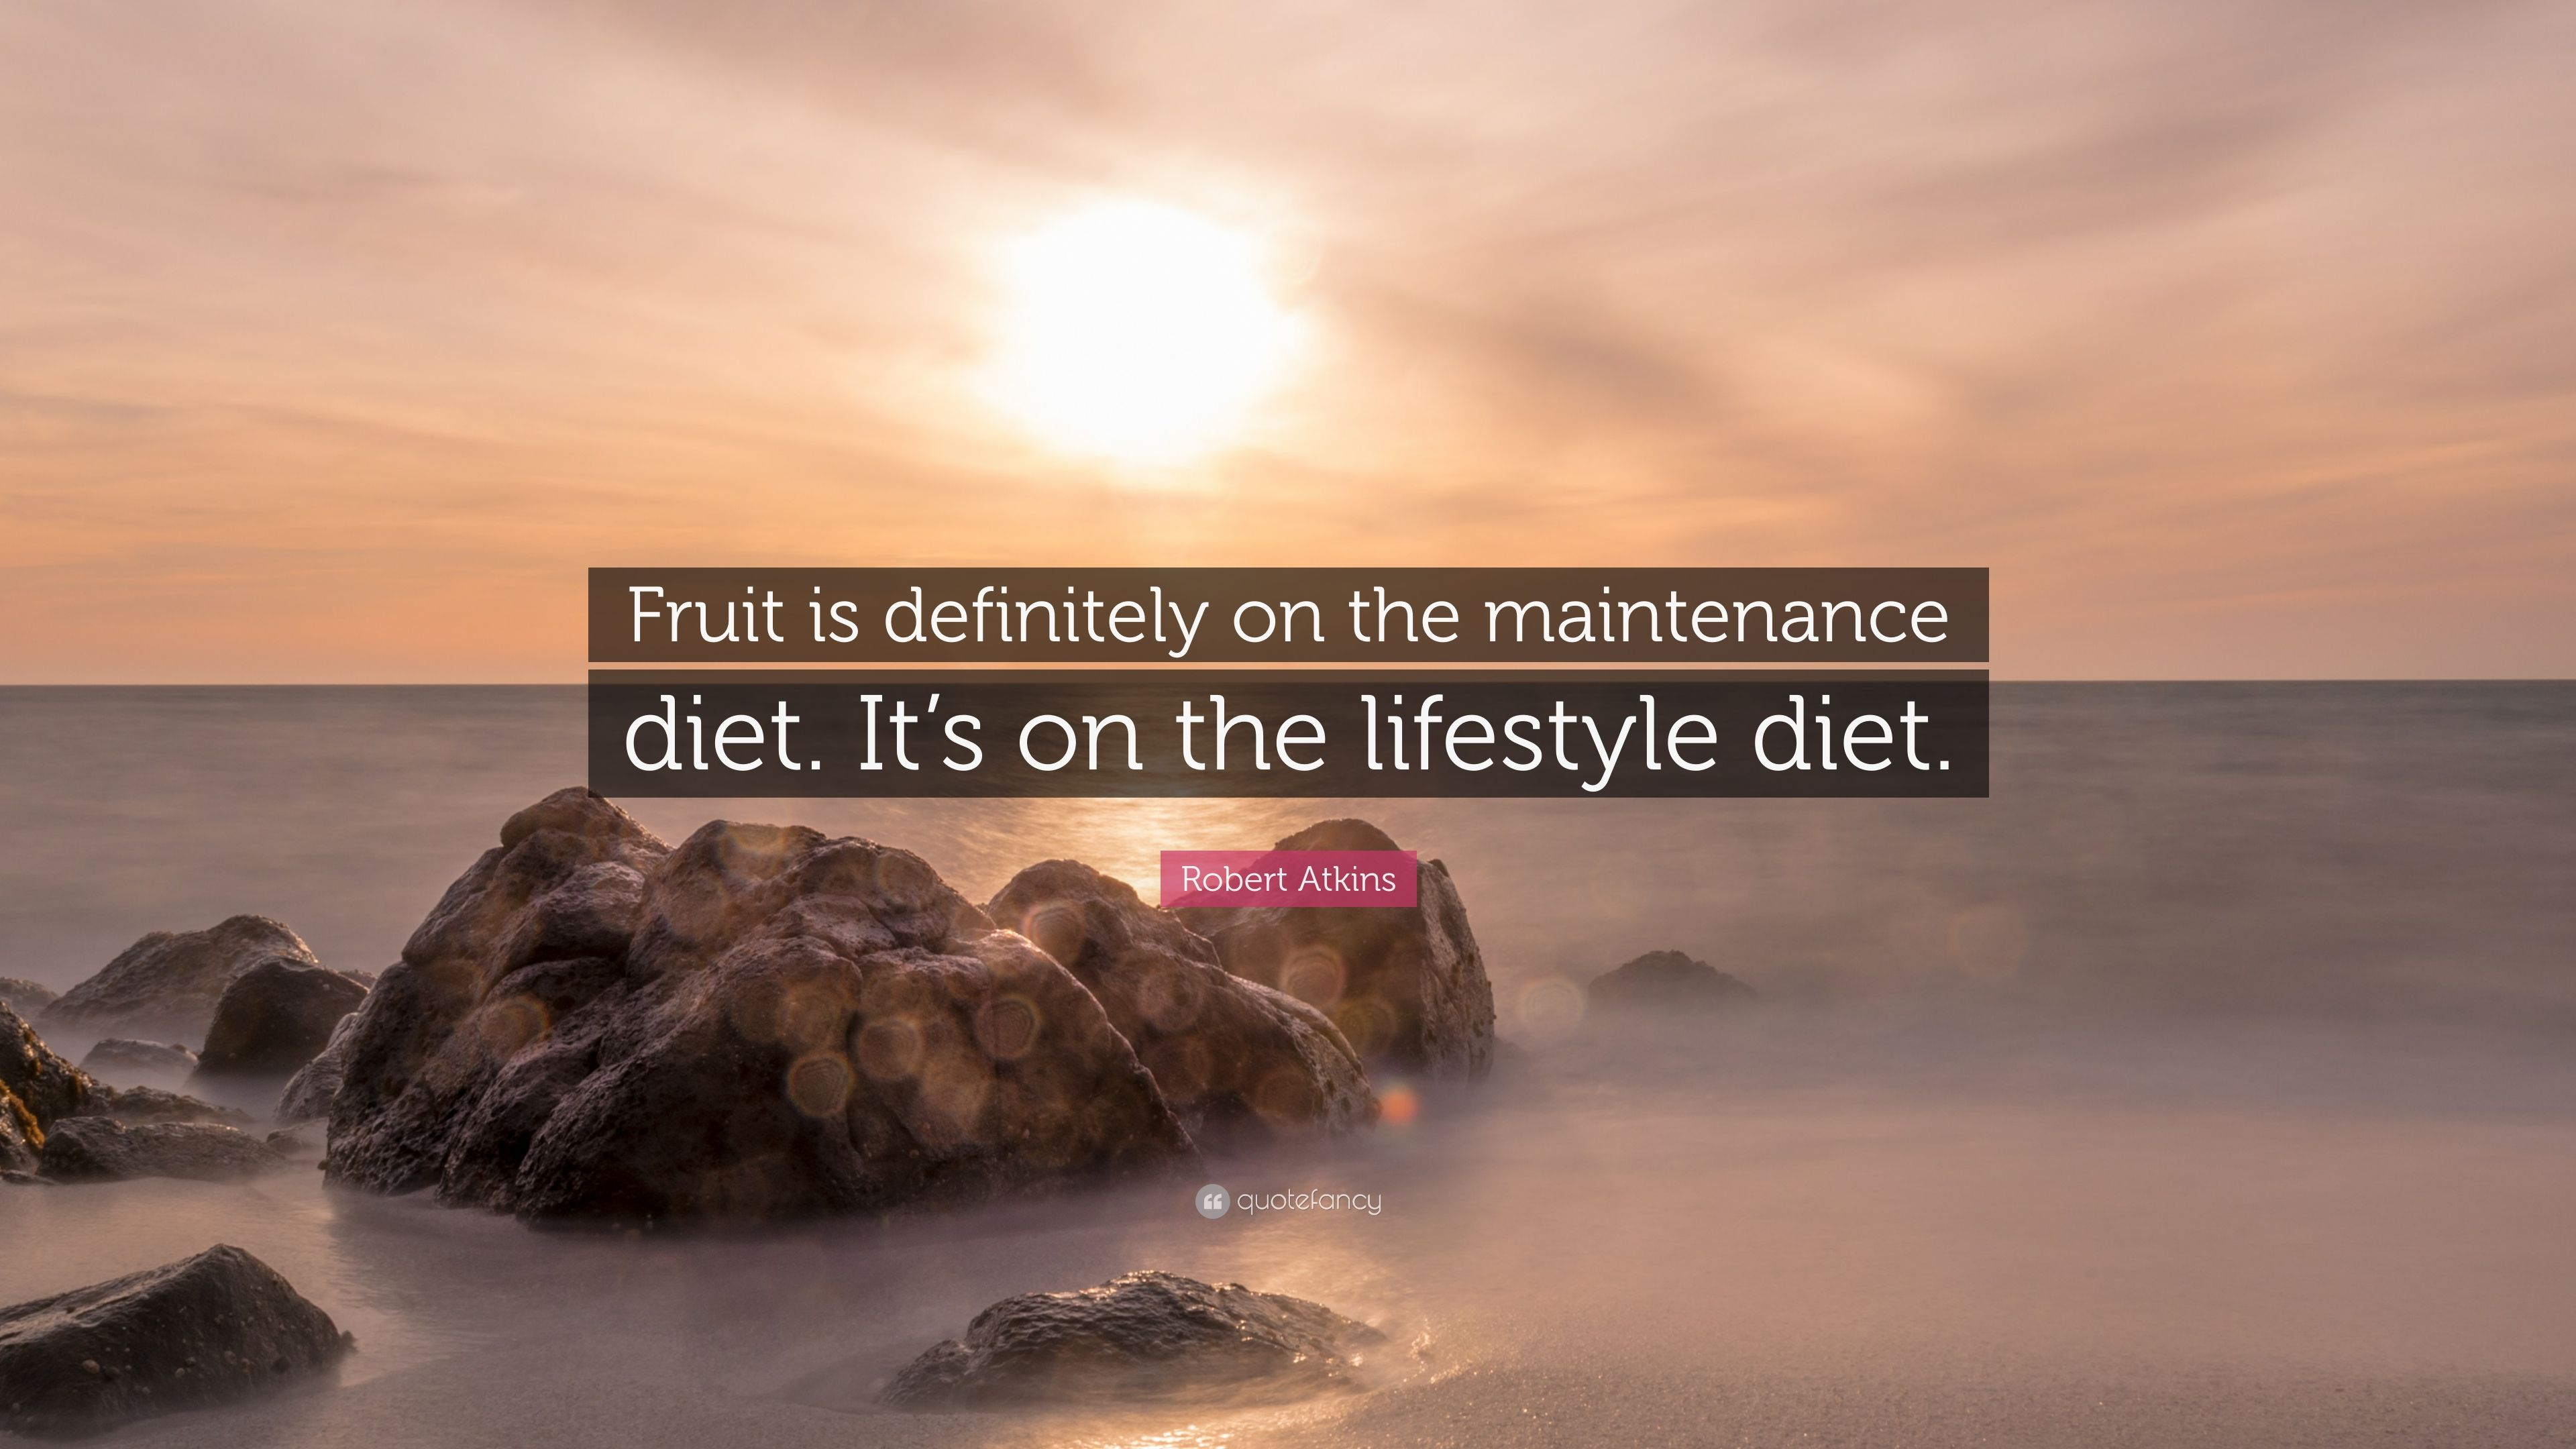 Robert Atkins Quote Fruit Is Definitely On The Maintenance Diet It S On The Lifestyle Diet 7 Wallpapers Quotefancy